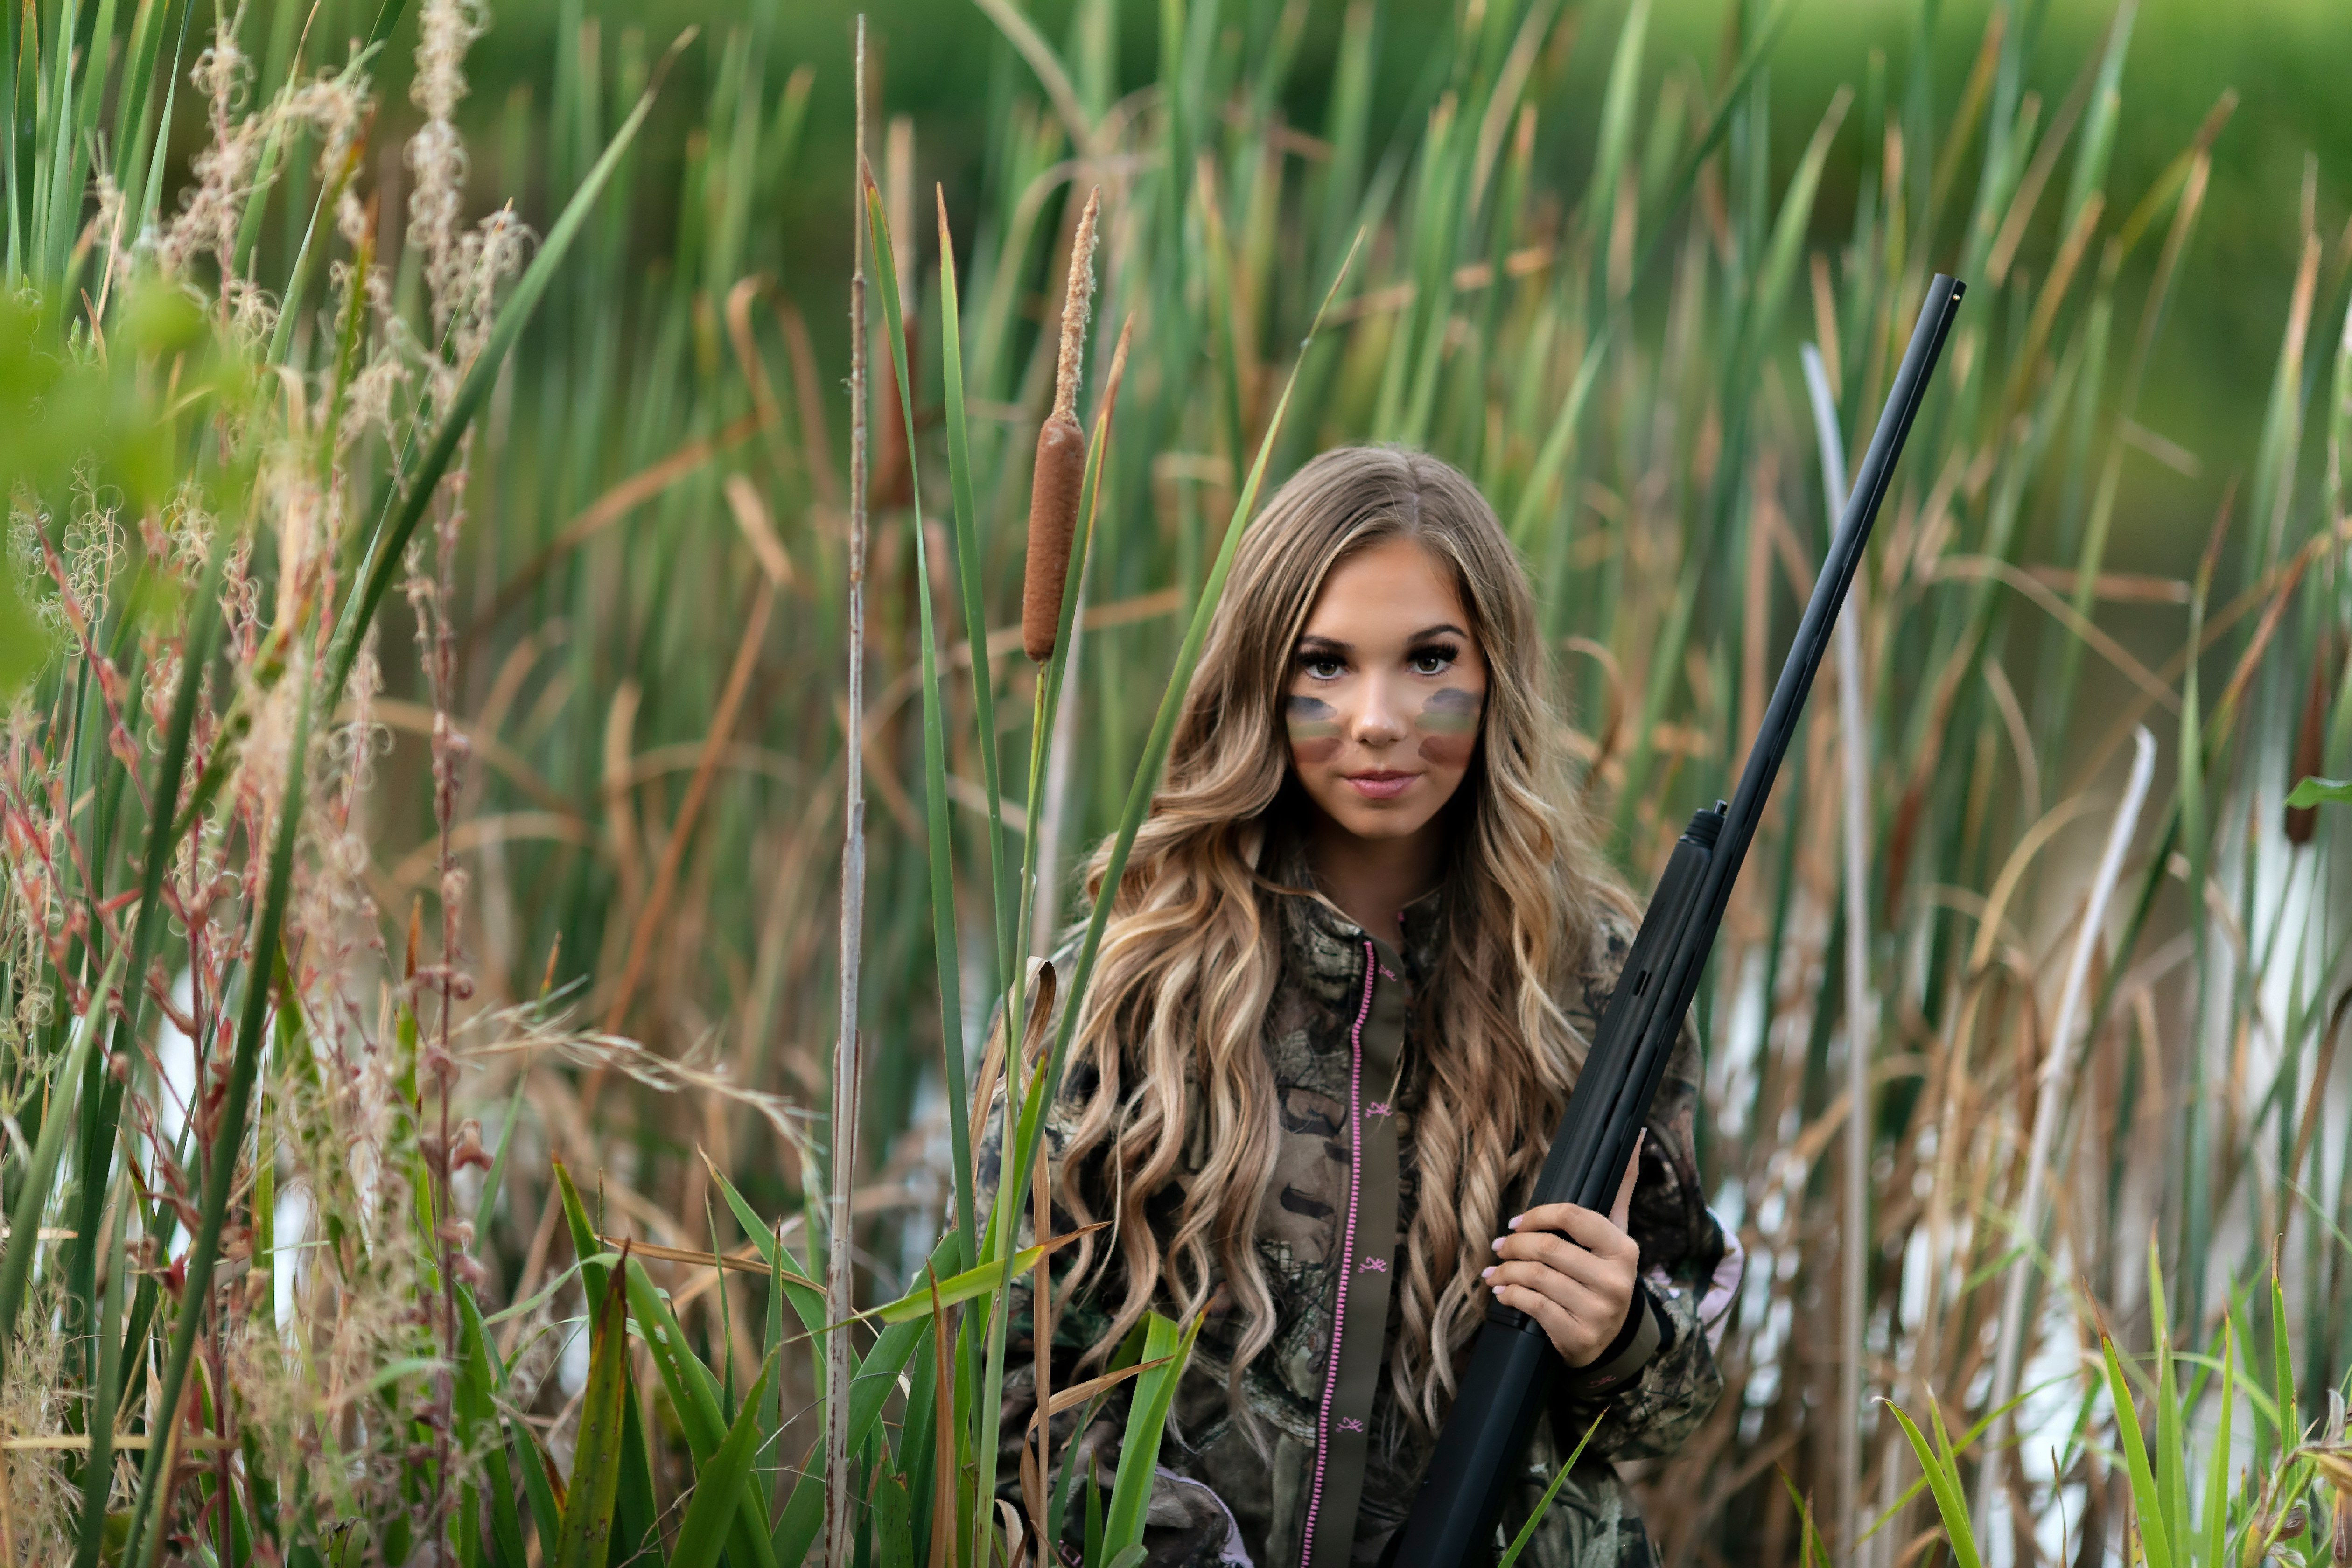 Teen girl in duck hunting gear and camo with gun